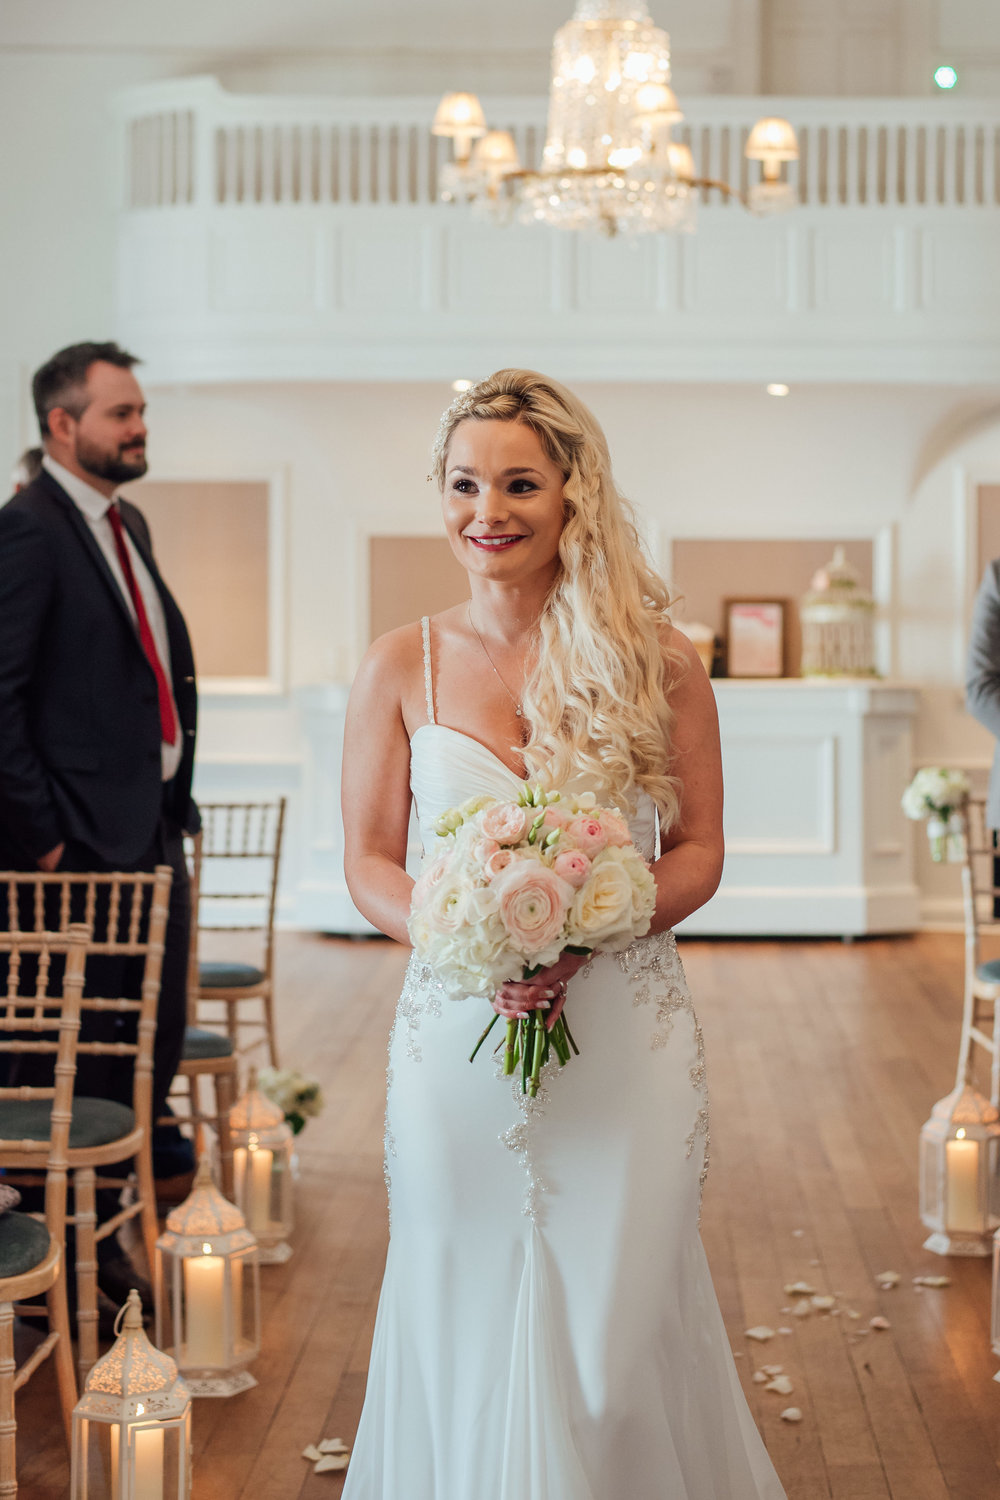 Bride walking down the aisle at The George In Rye East Sussex Wedding Venue - Amy James Photography documentary wedding photography in Hampshire Surrey and Dorset